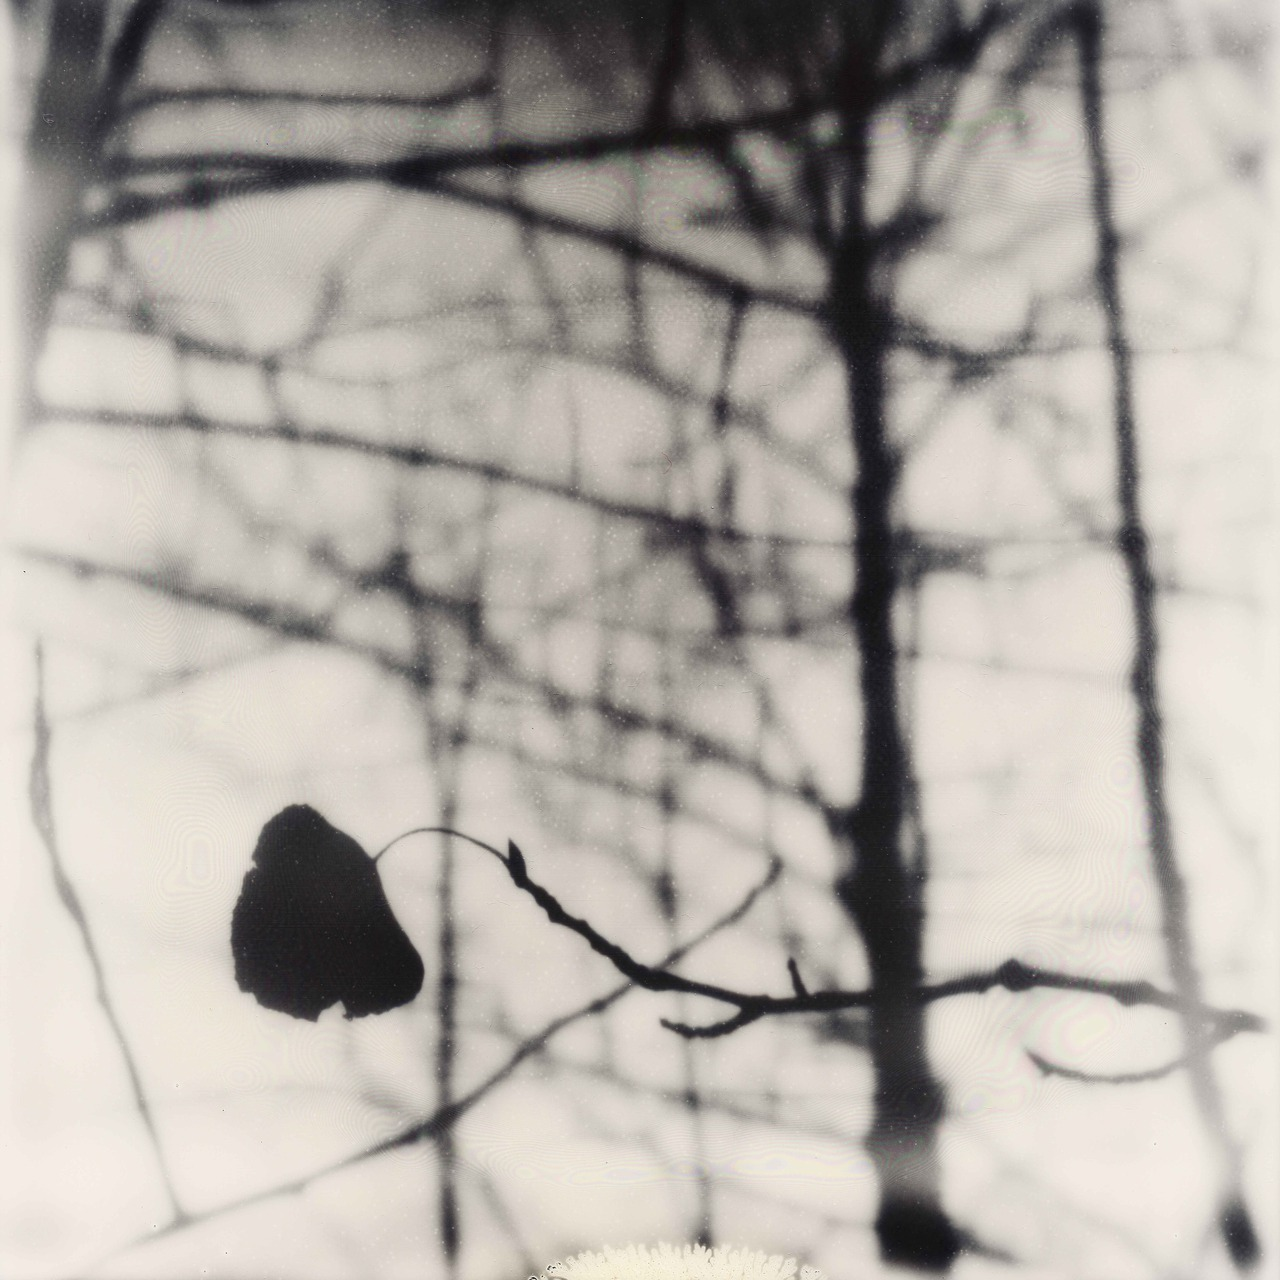 Ian Ruhter/ Impossible Film  /Polaroid /Aspen Tree /Lake Tahoe Ca, 11.39.2012